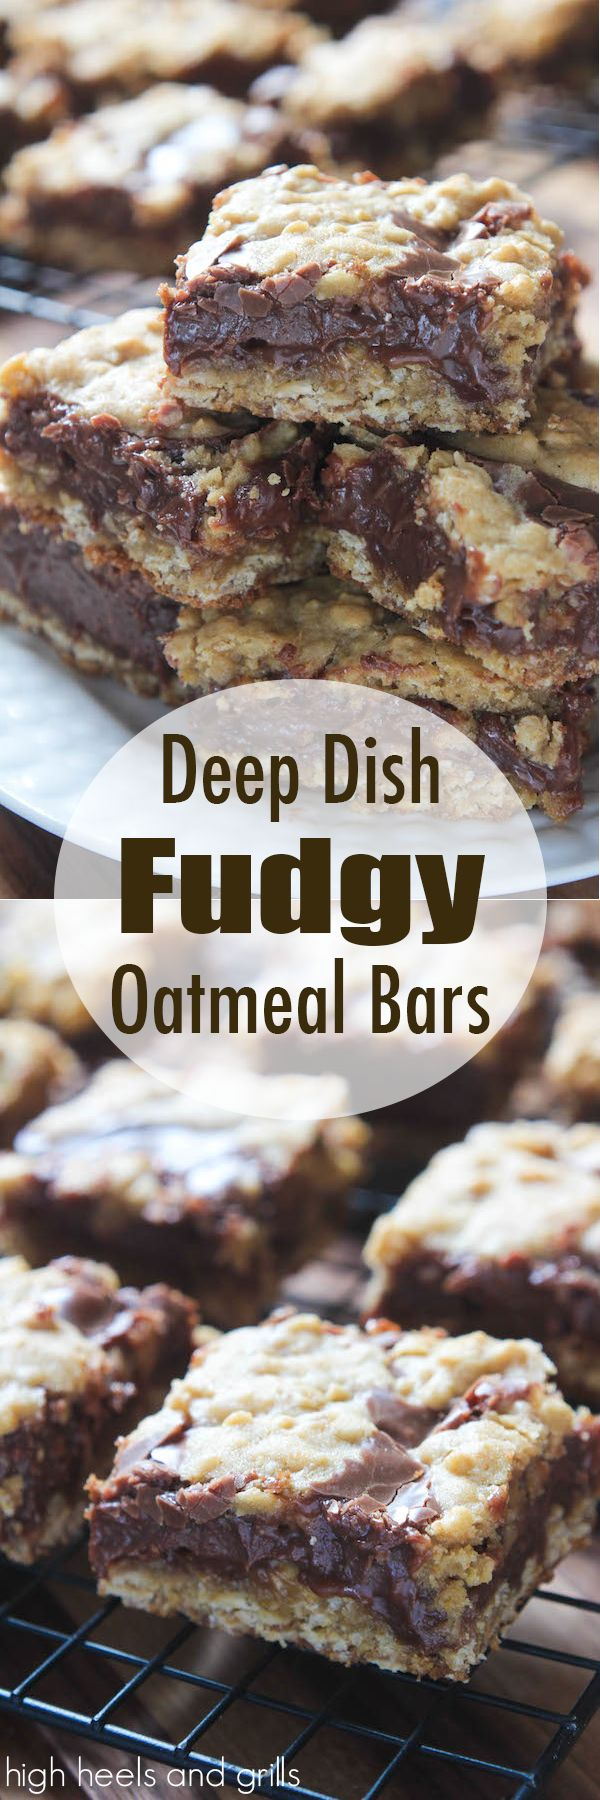 Deep Dish Fudgy Oatmeal Bars. Delicious and easy dessert recipe